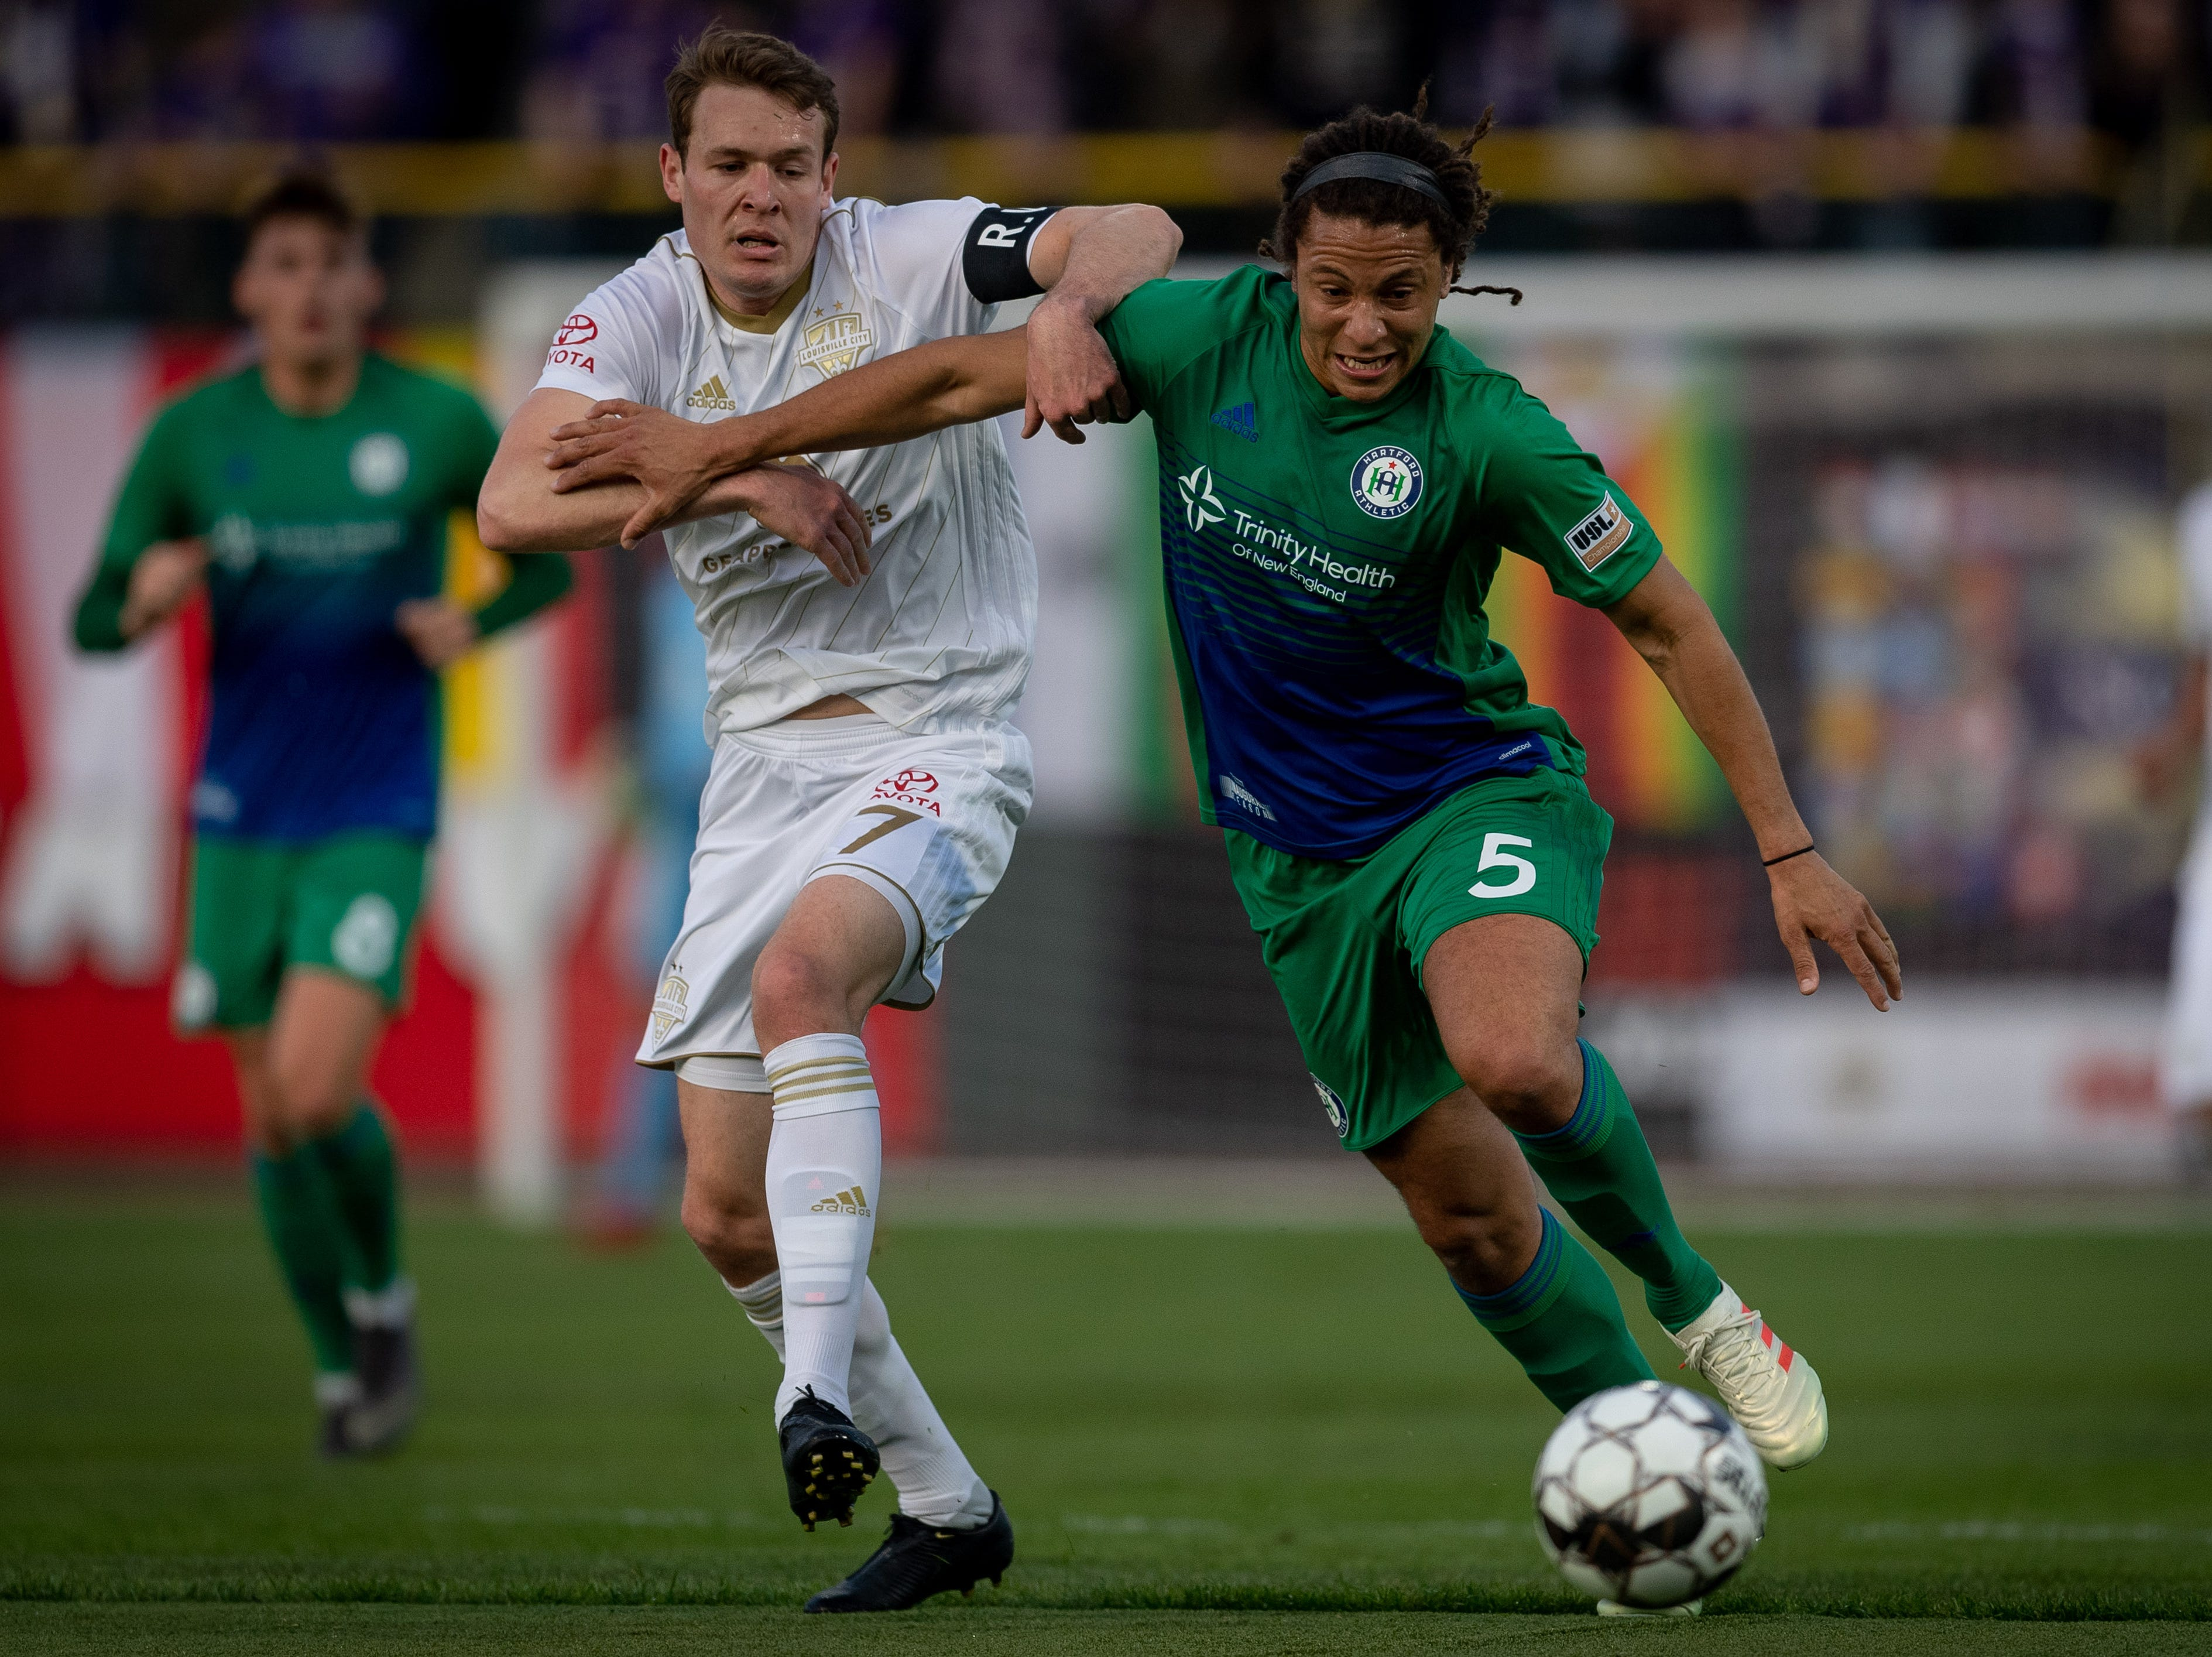 Louisville City FC midfielder Magnus Rasmussen (7) plays against Hartford Athletic Tyler David during the season opening match in Louisville, Ky., Saturday, March 23, 2019.